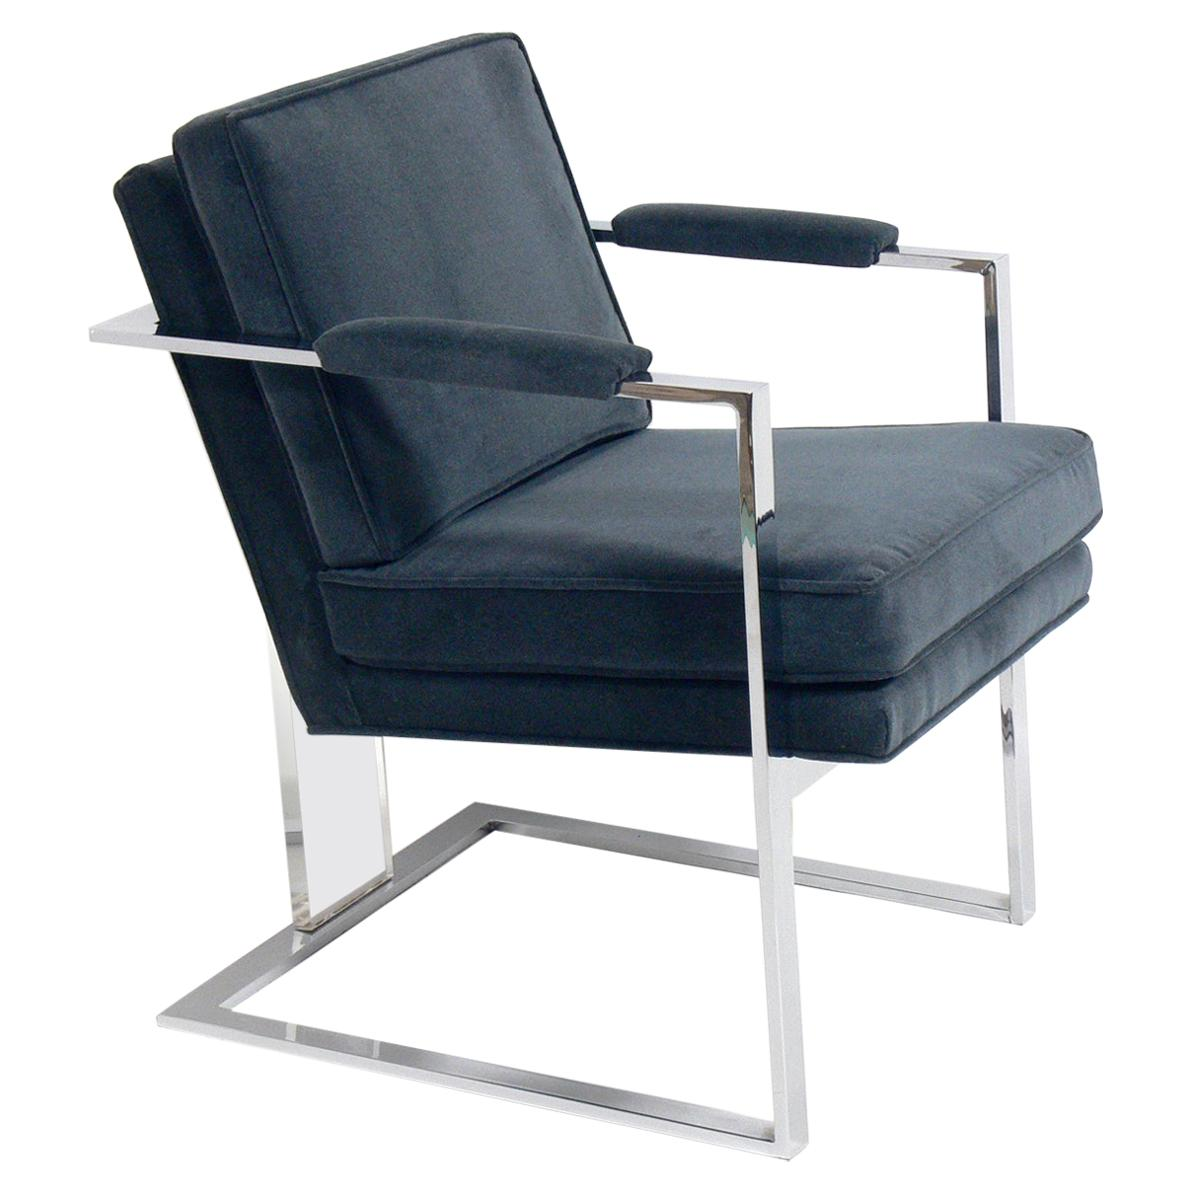 Midcentury Chrome and Lucite Lounge Chair Attributed to Milo Baughman